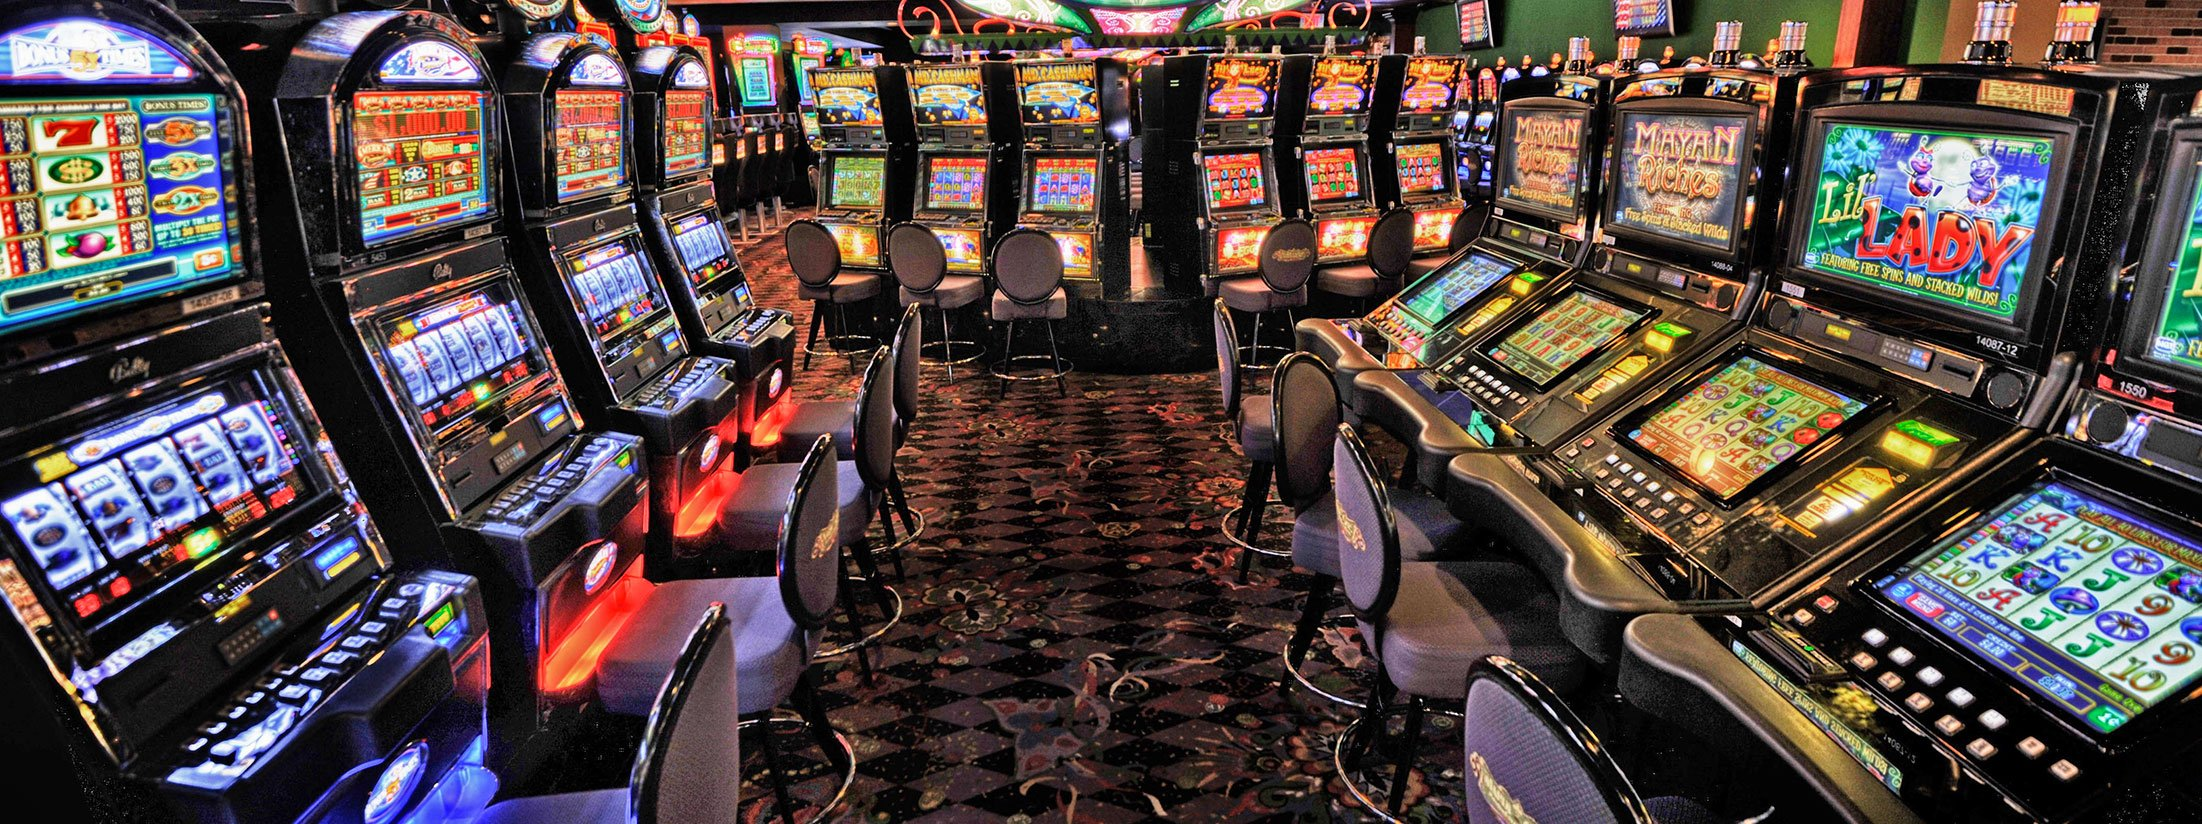 Free game slot machine casino